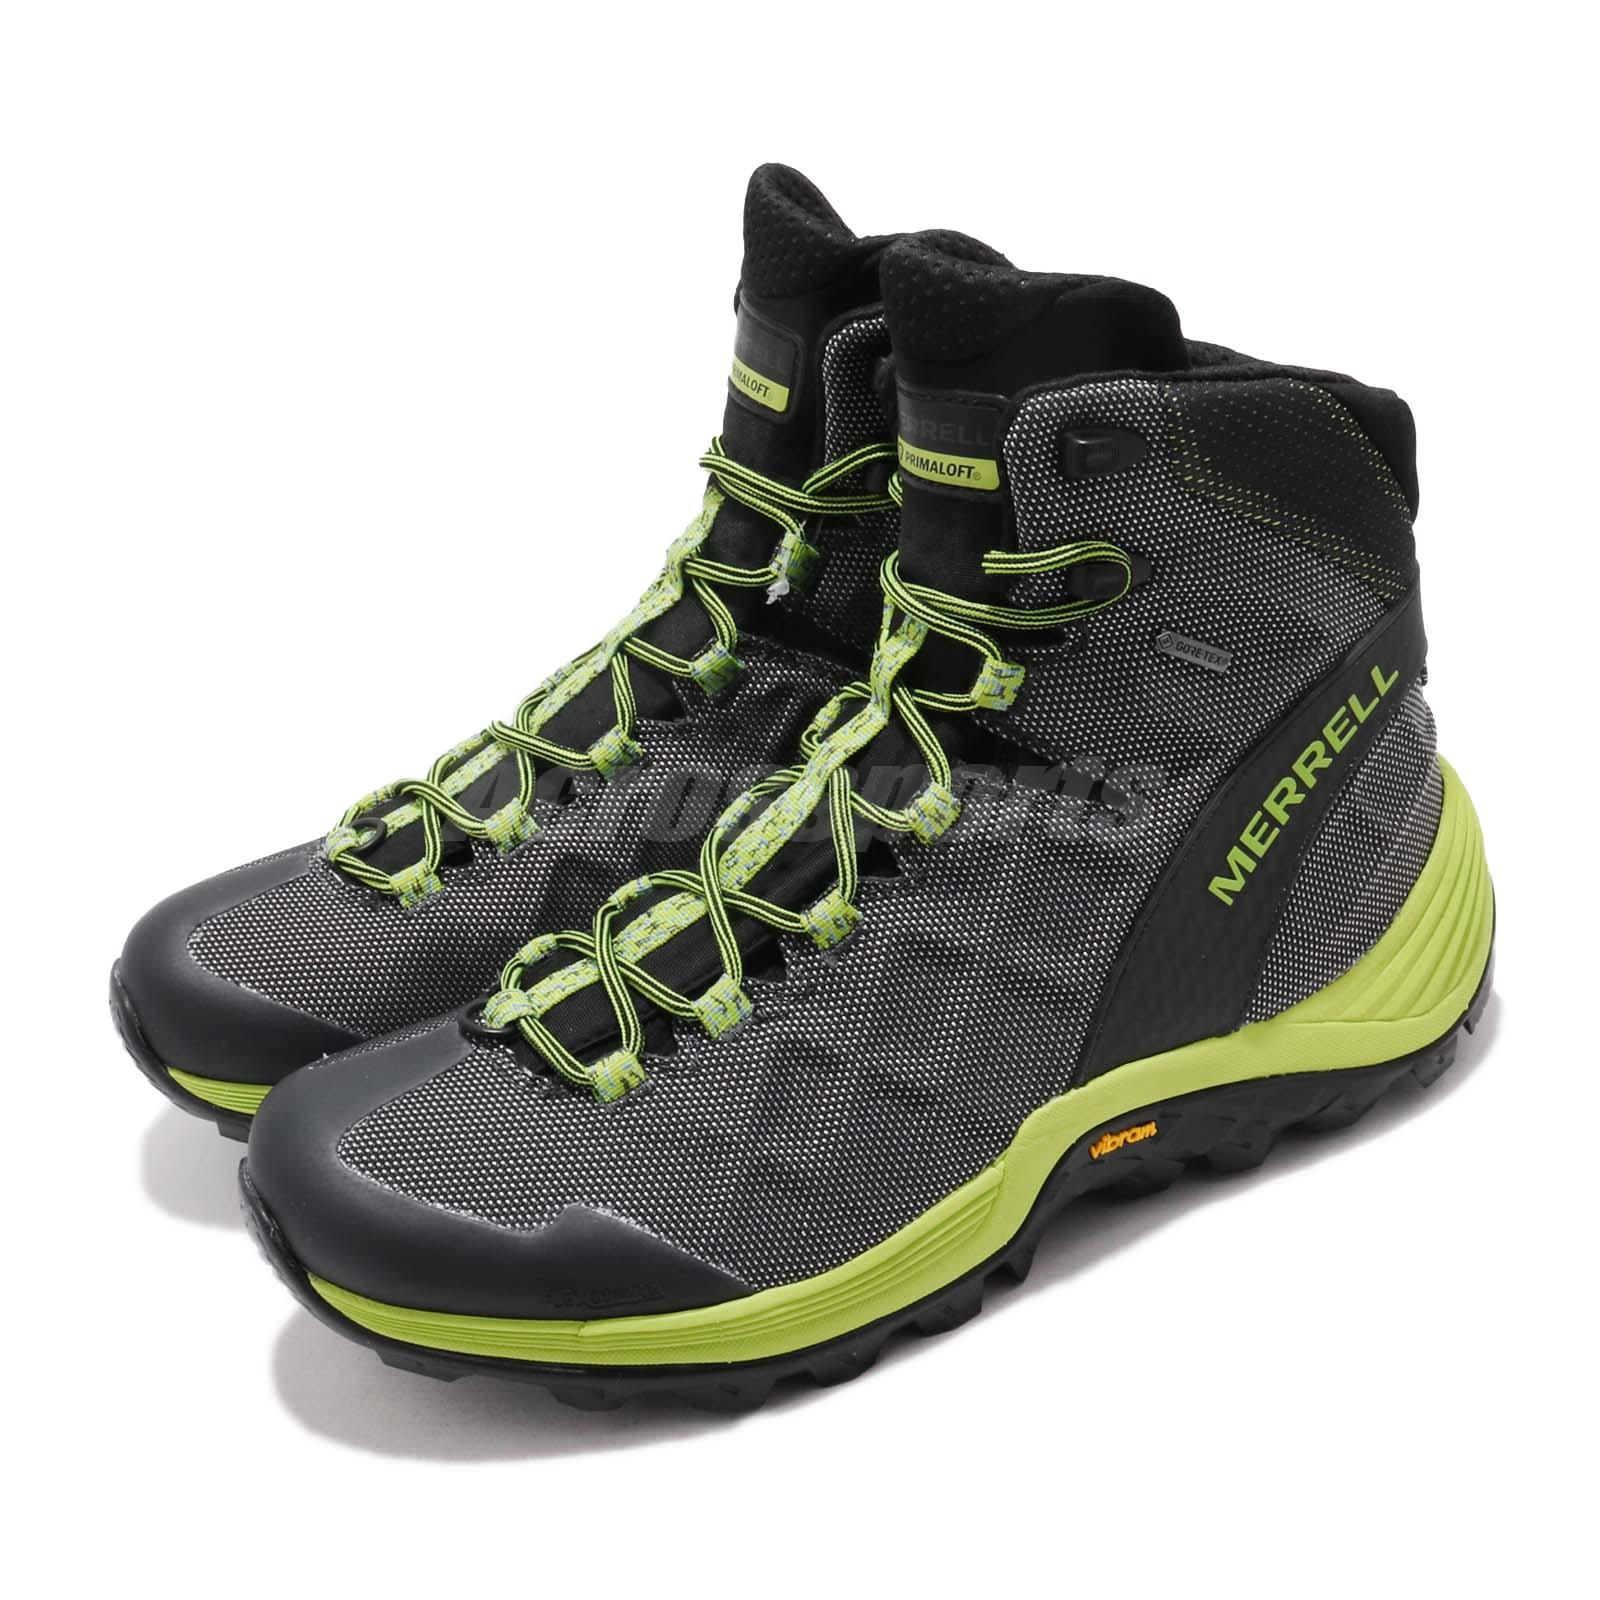 59f85bd3 Details about Merrell Thermo Rogue Mid GTX Gore-Tex Vibram Black Men  Outdoors Shoes J17009